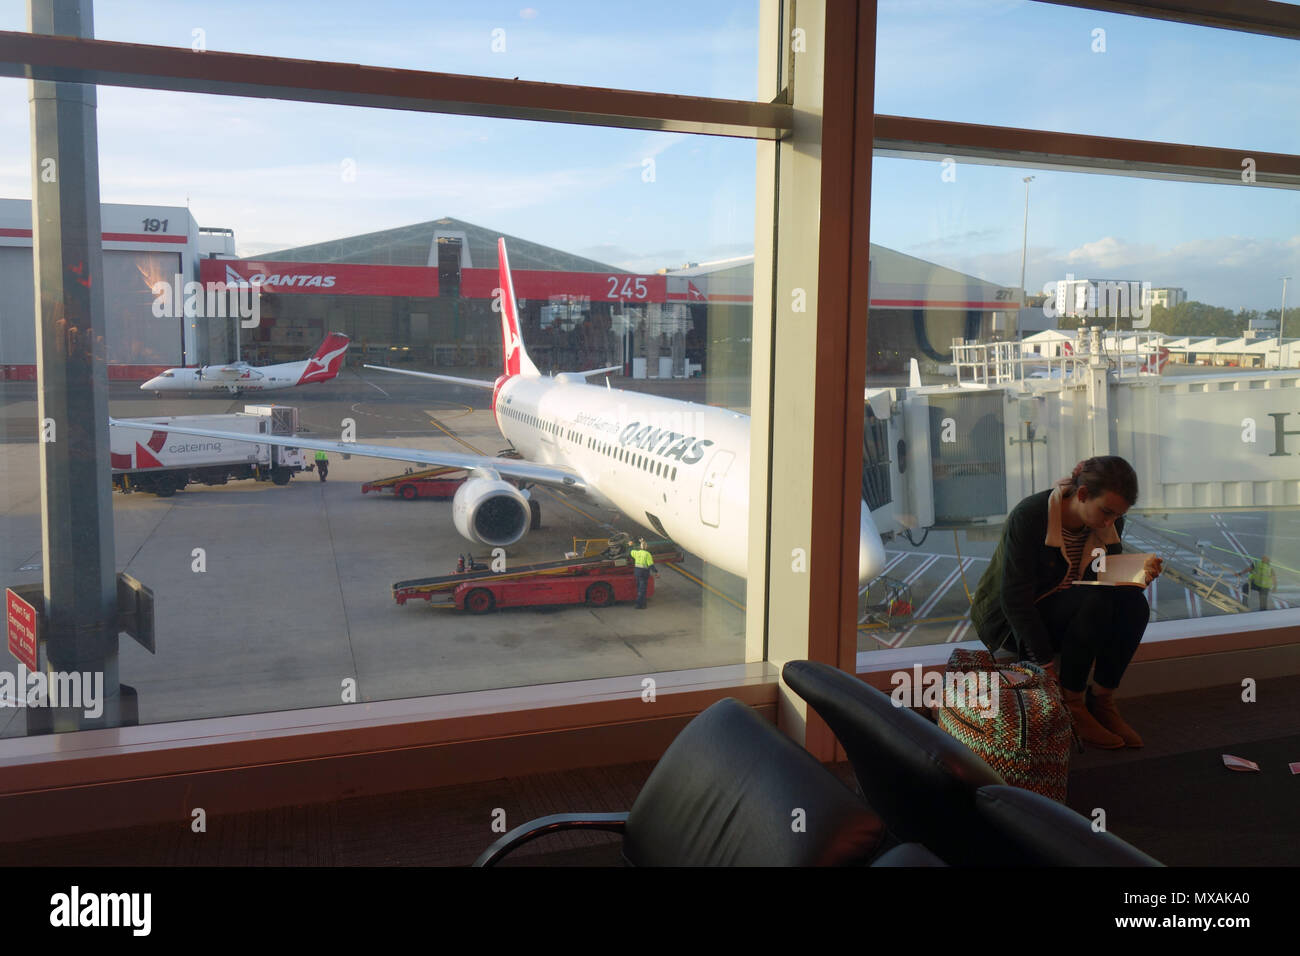 Woman reading a book while waiting for Qantas flight at airport, Sydney, NSW, Australia. No MR or PR - Stock Image